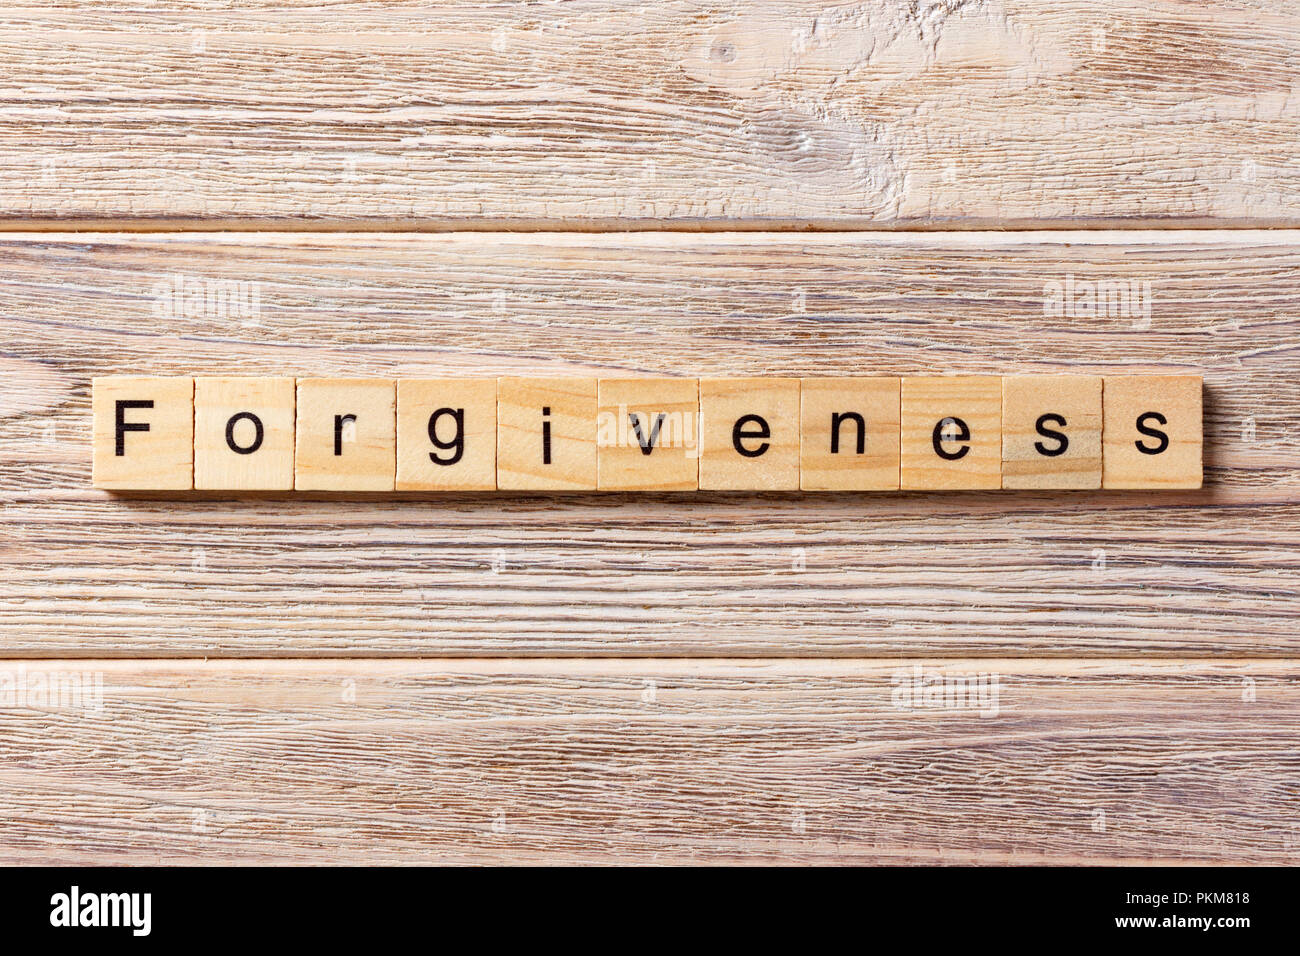 forgiveness word written on wood block. forgiveness text on table, concept. - Stock Image